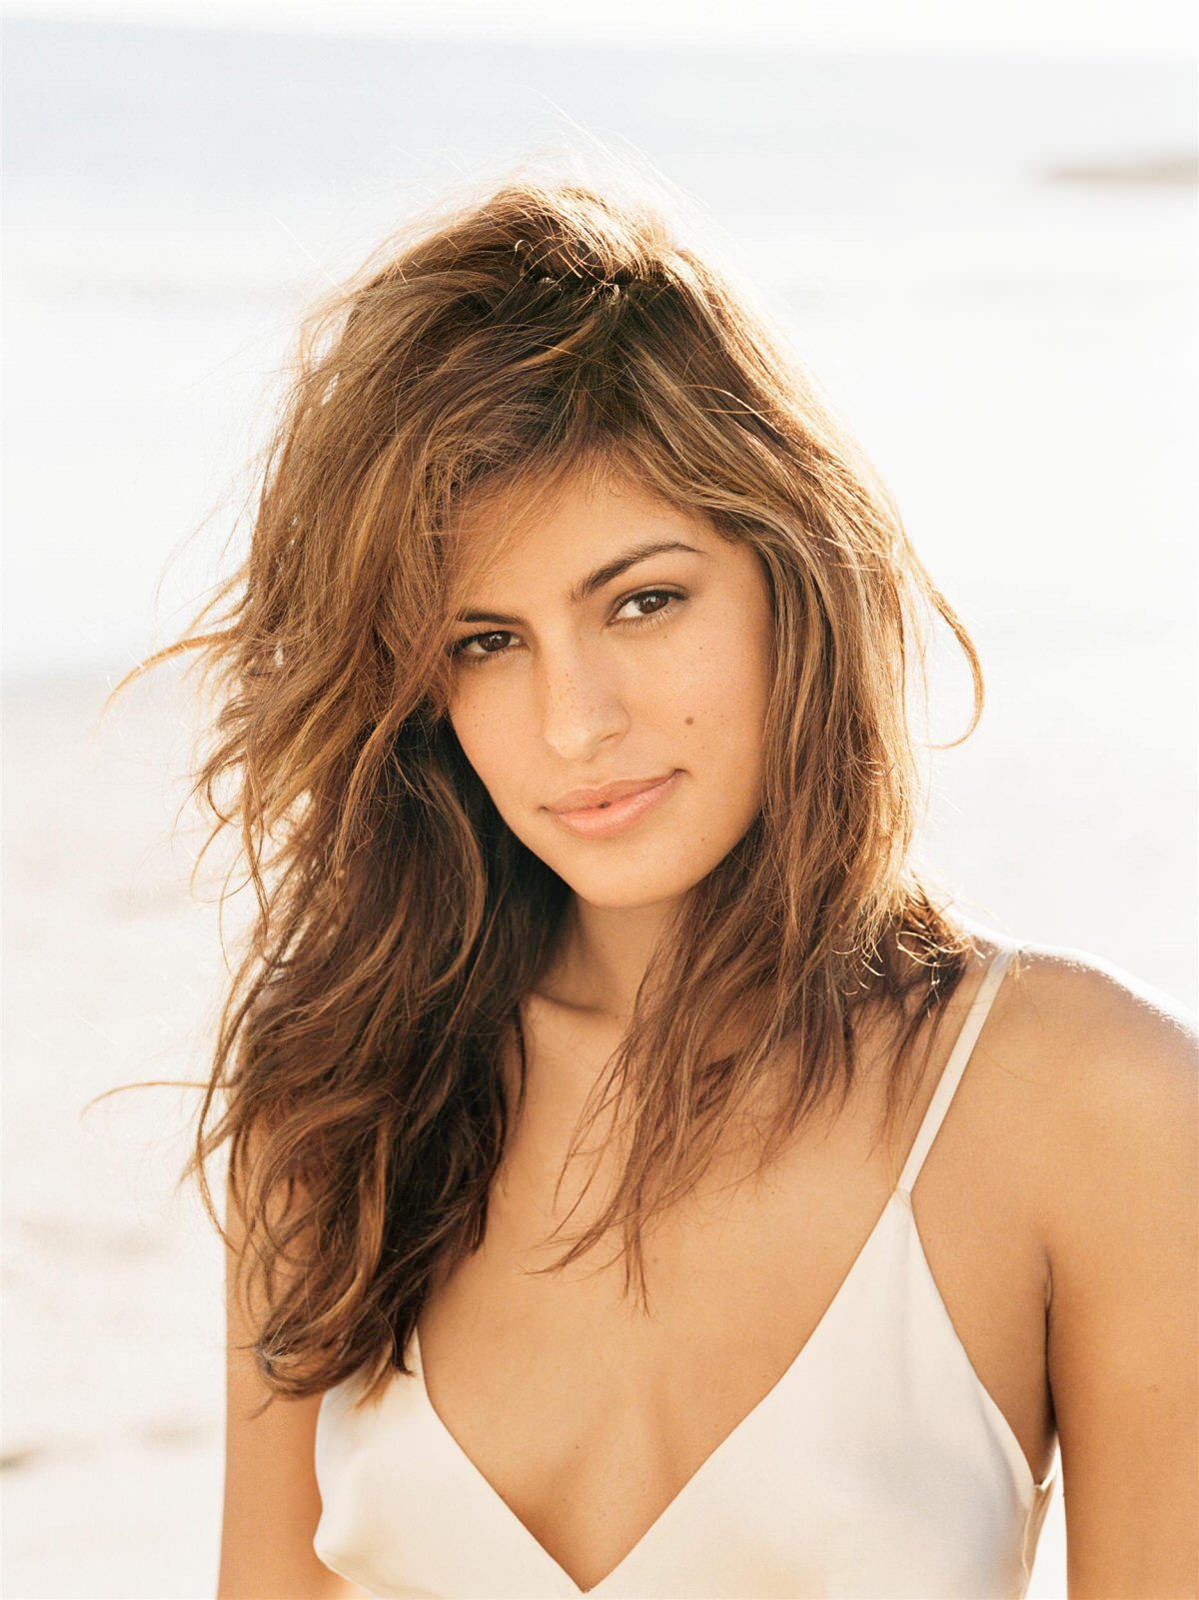 Eva Mendes Photo Gallery